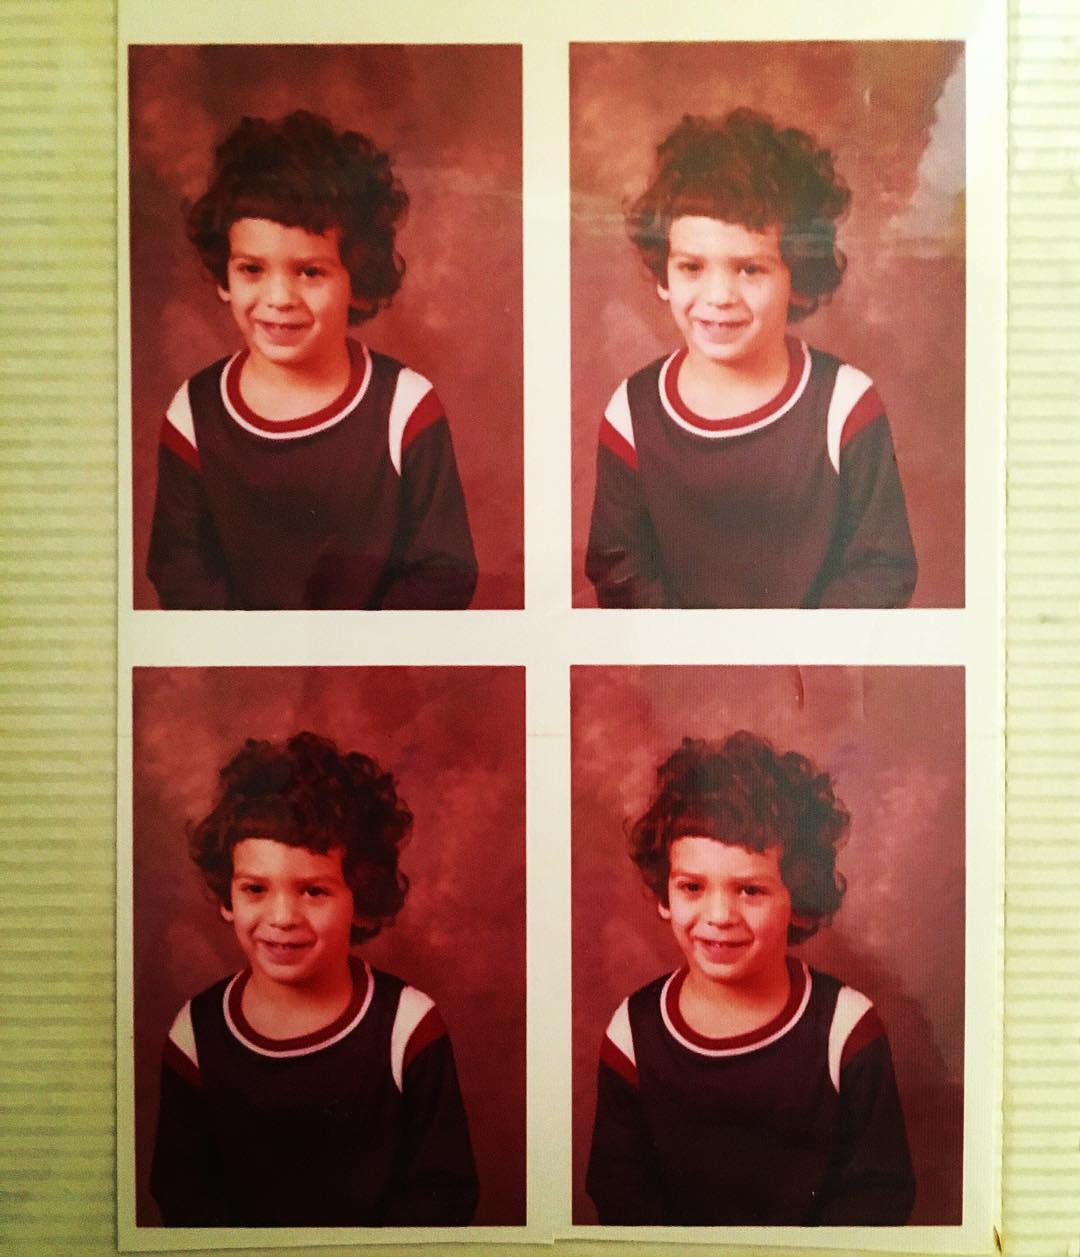 """Studies in #Jewish #hair, late 70s edition, #awkwardschoolphotos almost #jewfro #pdx #portland #westcoastJews #ainsworthschool #tbt"